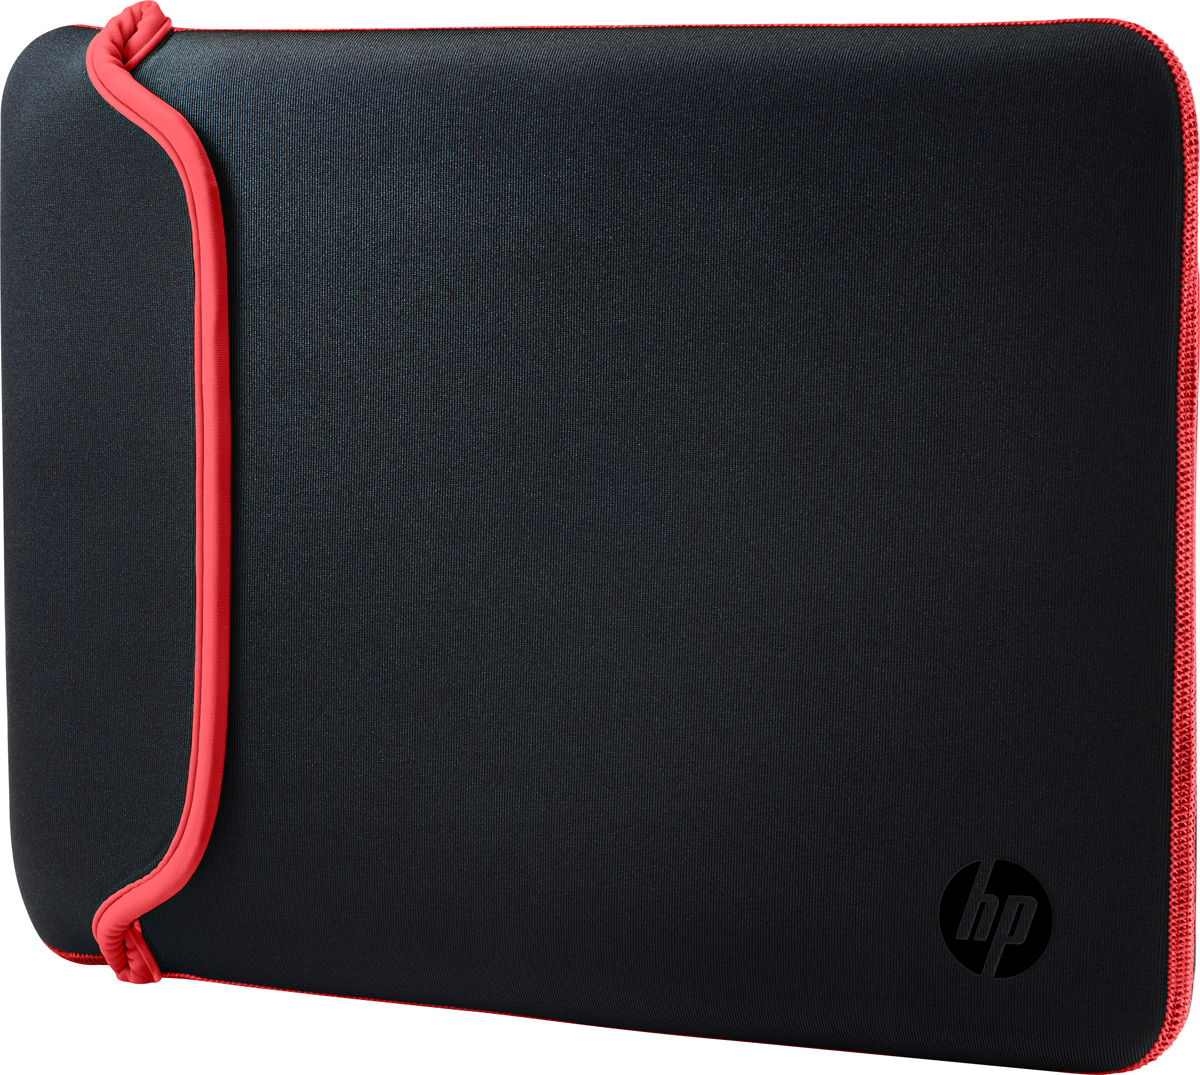 HP Neoprene Sleeve чехол для ноутбука 15.6, Black Red (V5C30AA)1000391210